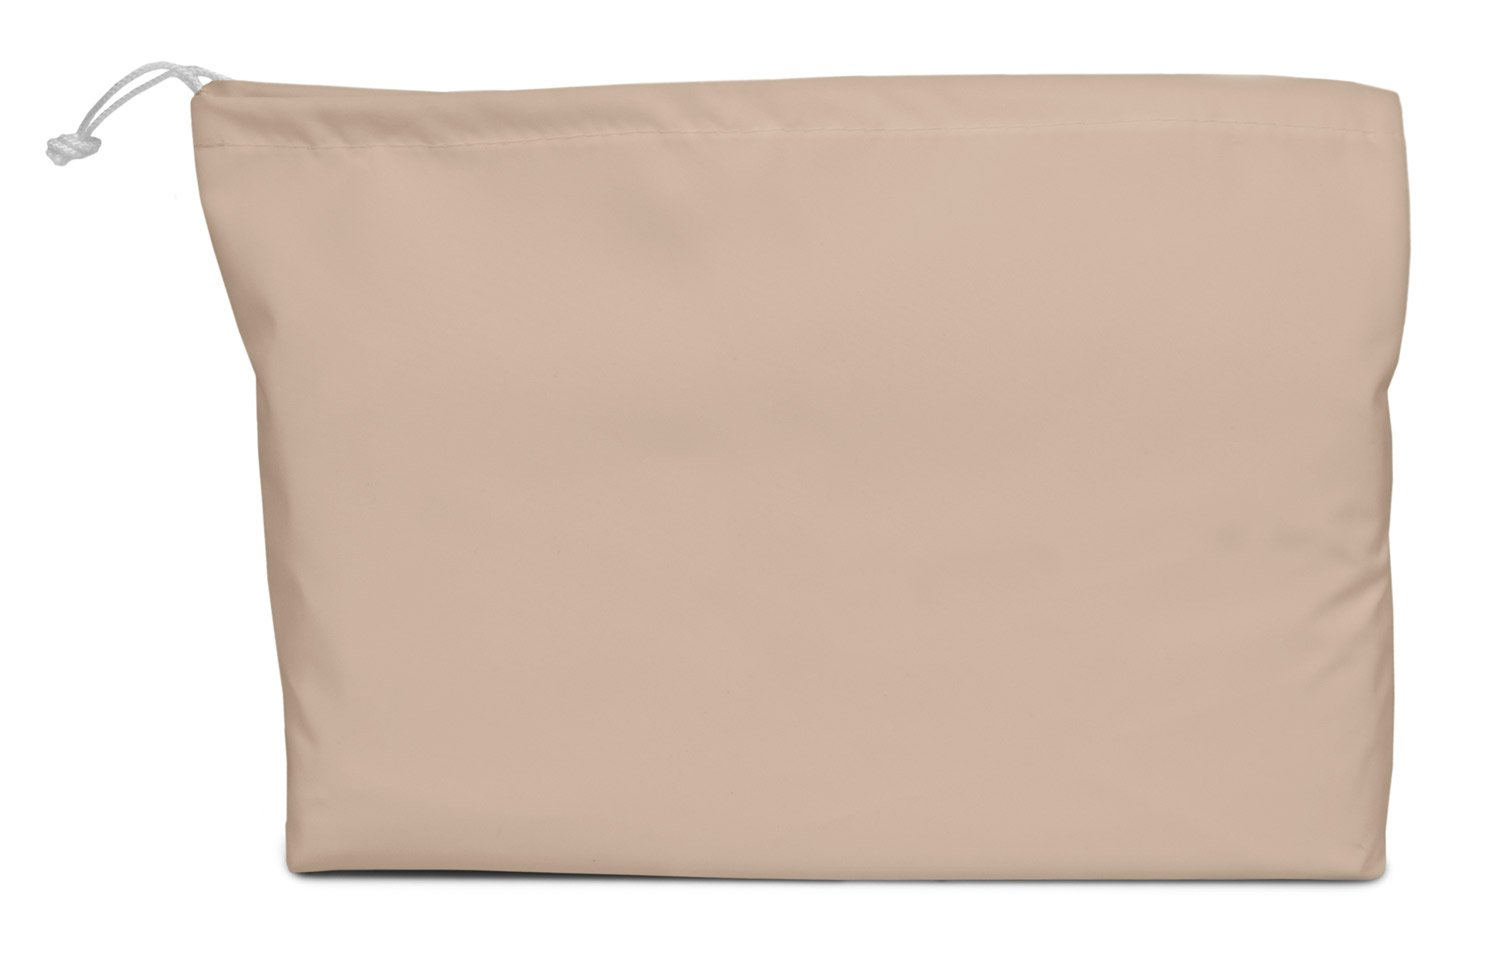 KoverRoos Weathermax 49355 Deep Large Sofa Cover, 87-Inch Width by 40-Inch Diameter by 31-Inch Height, Toast by KOVERROOS (Image #2)